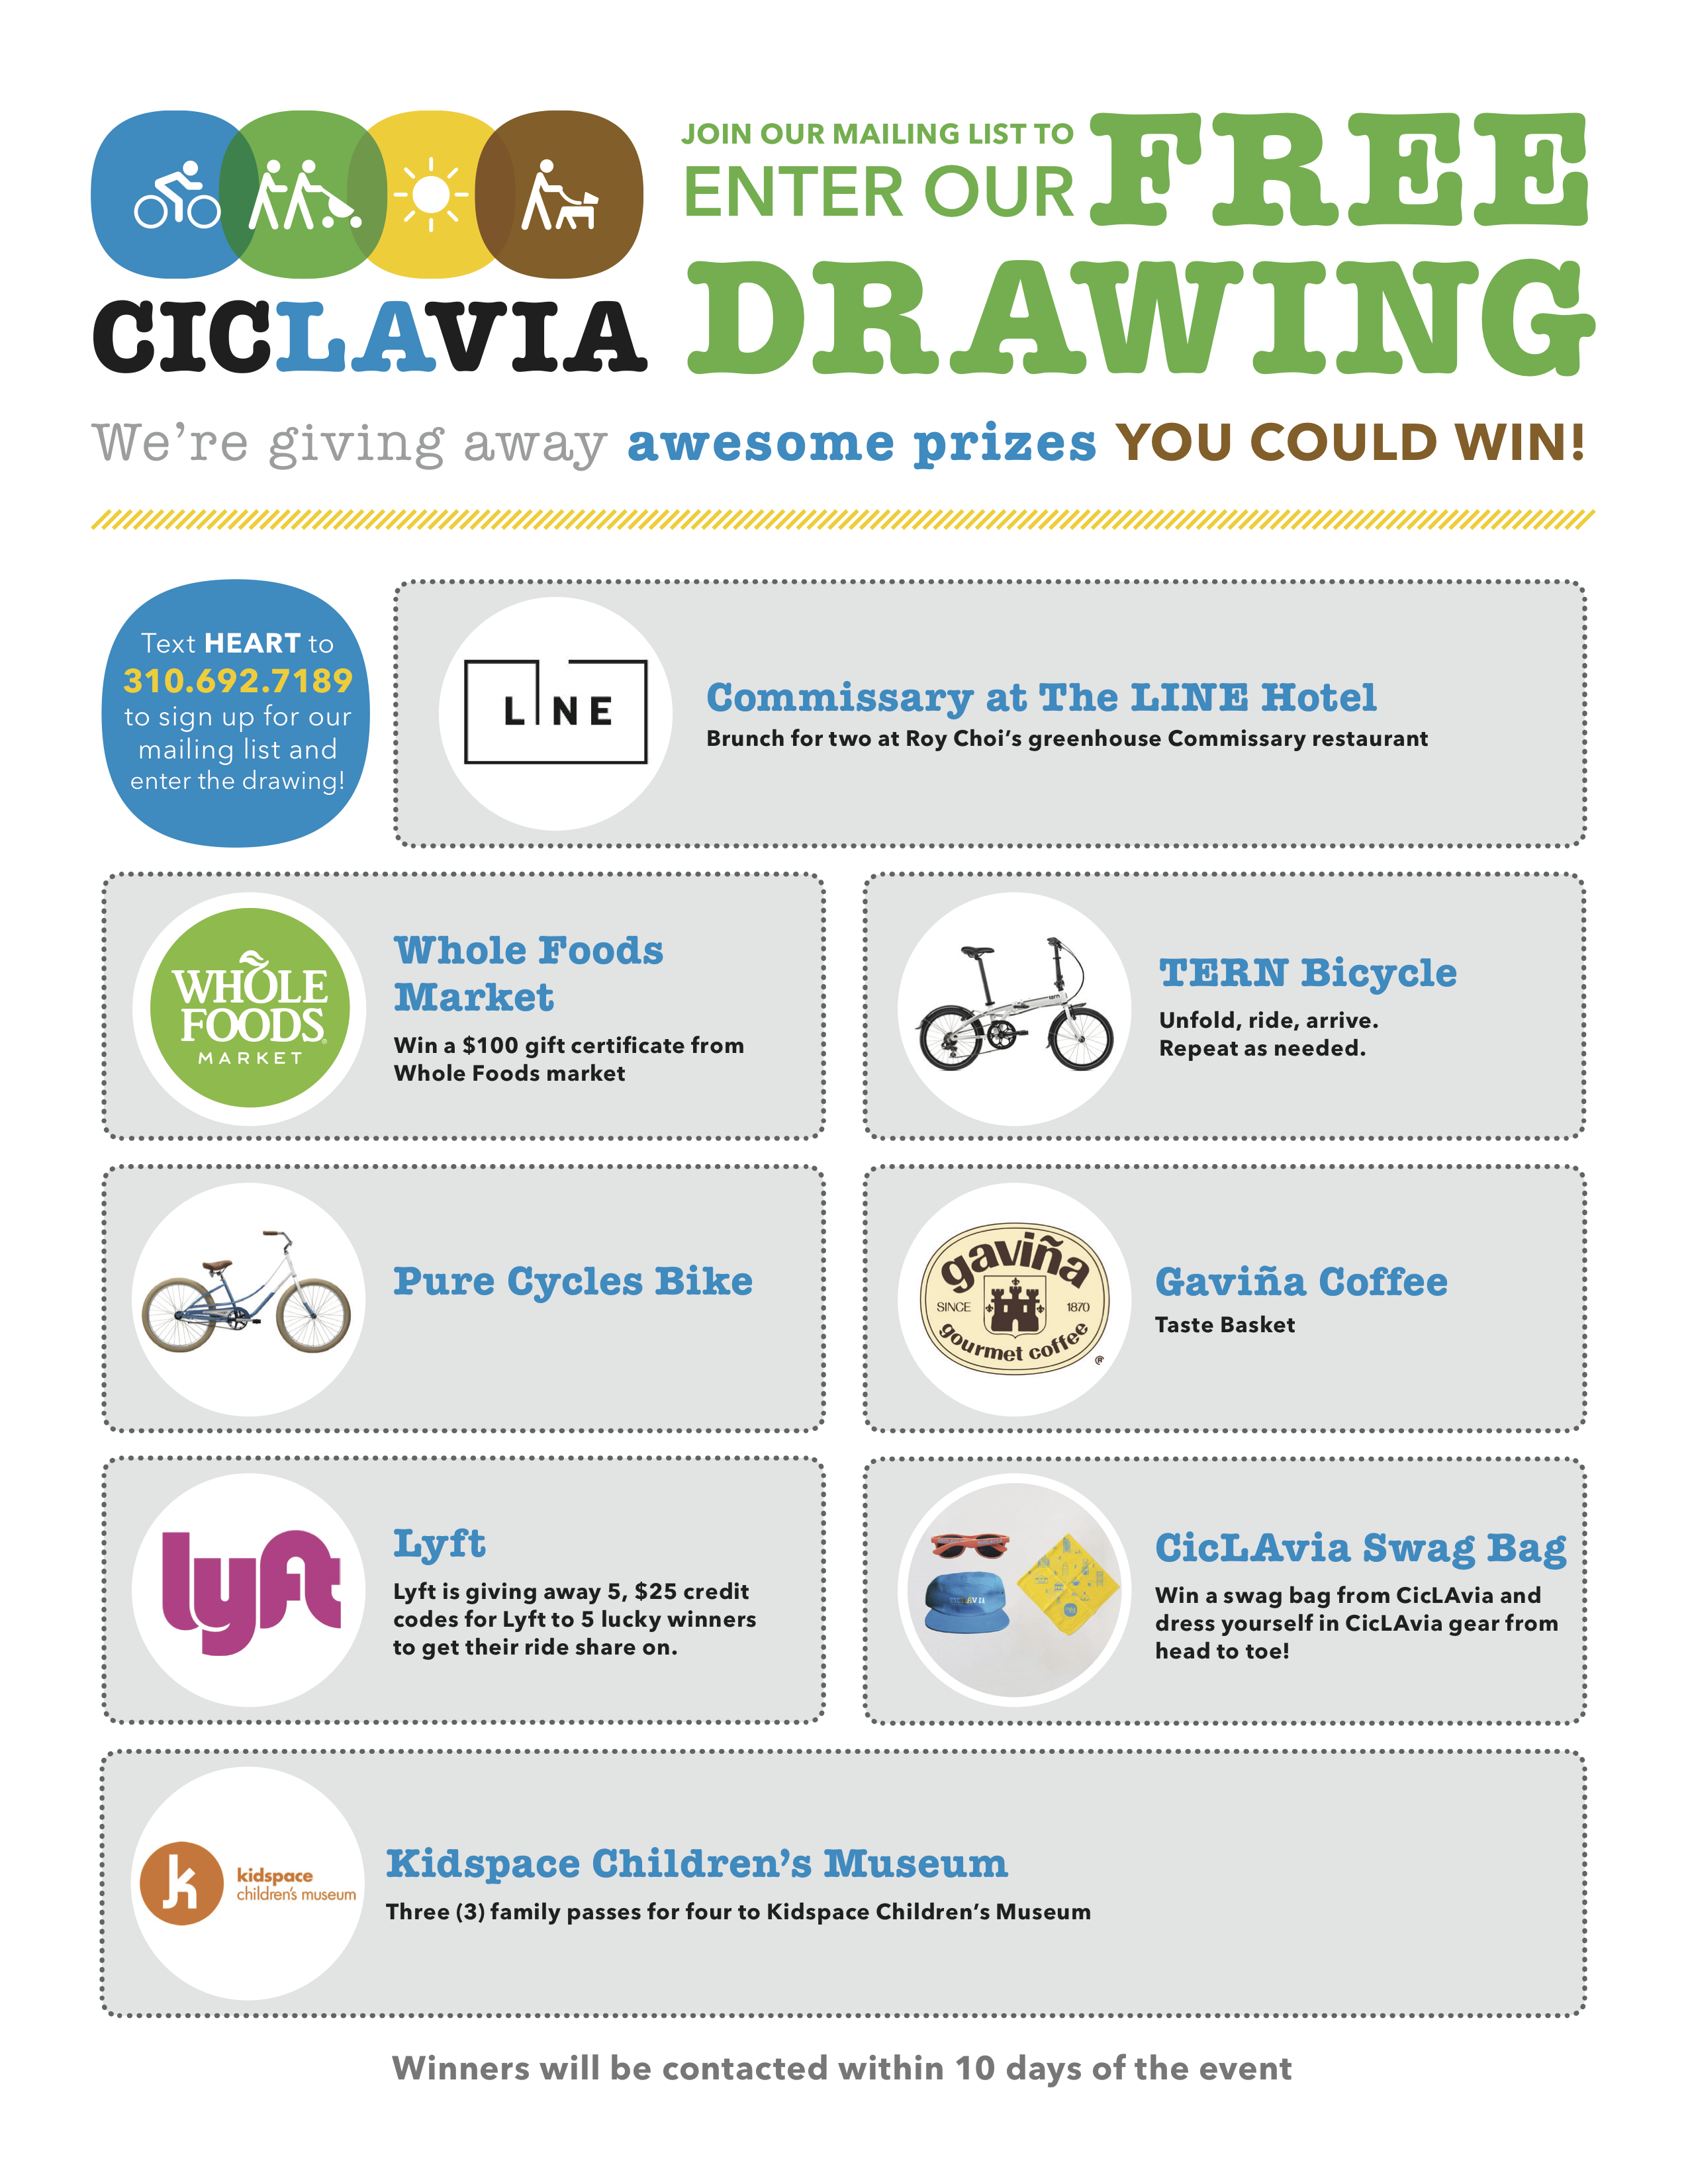 ciclavia_hola_101616_freedrawing_8.5x11_3.png